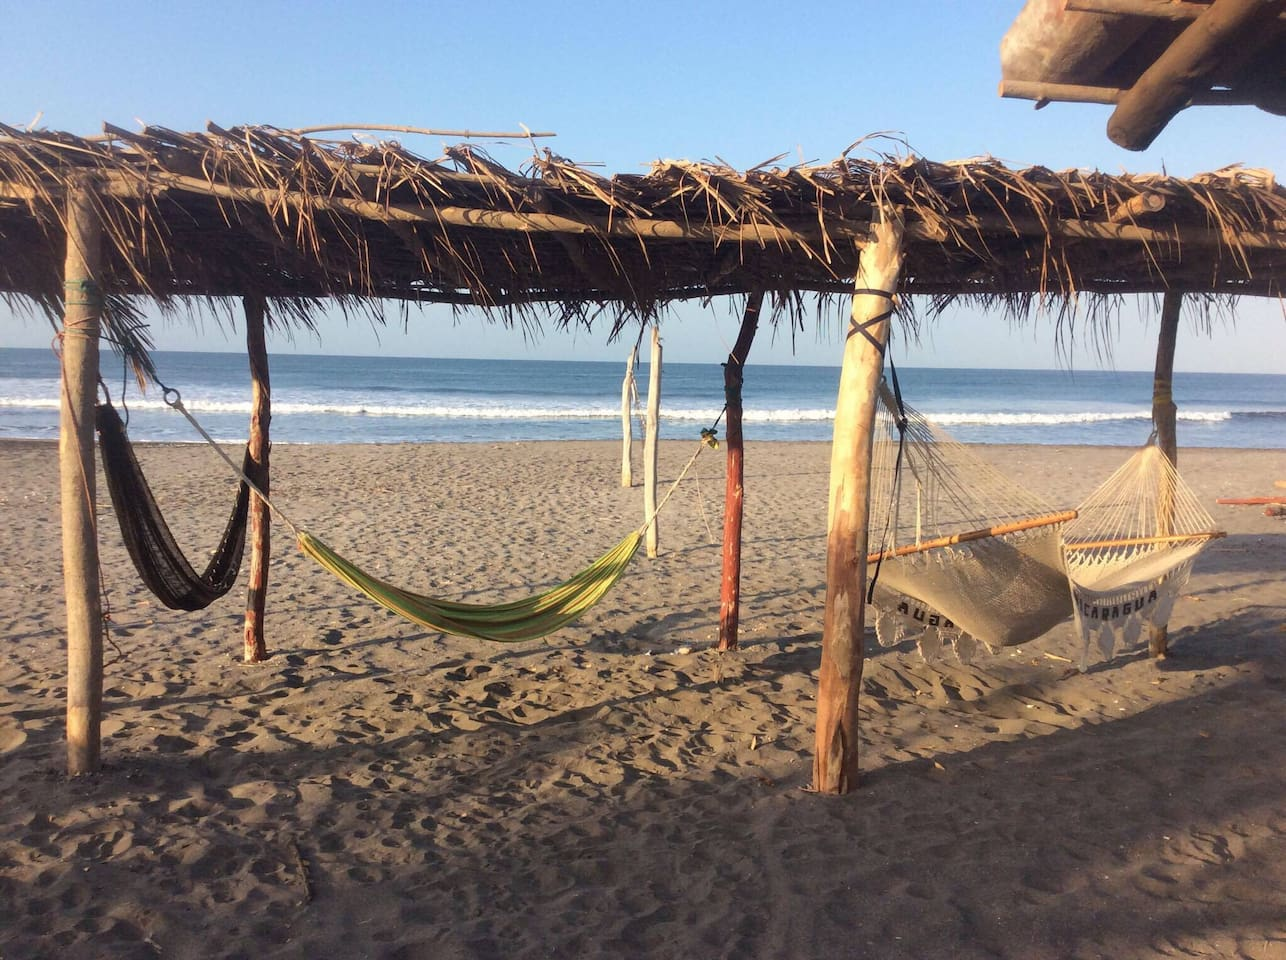 Relaxing hammocks in the sand